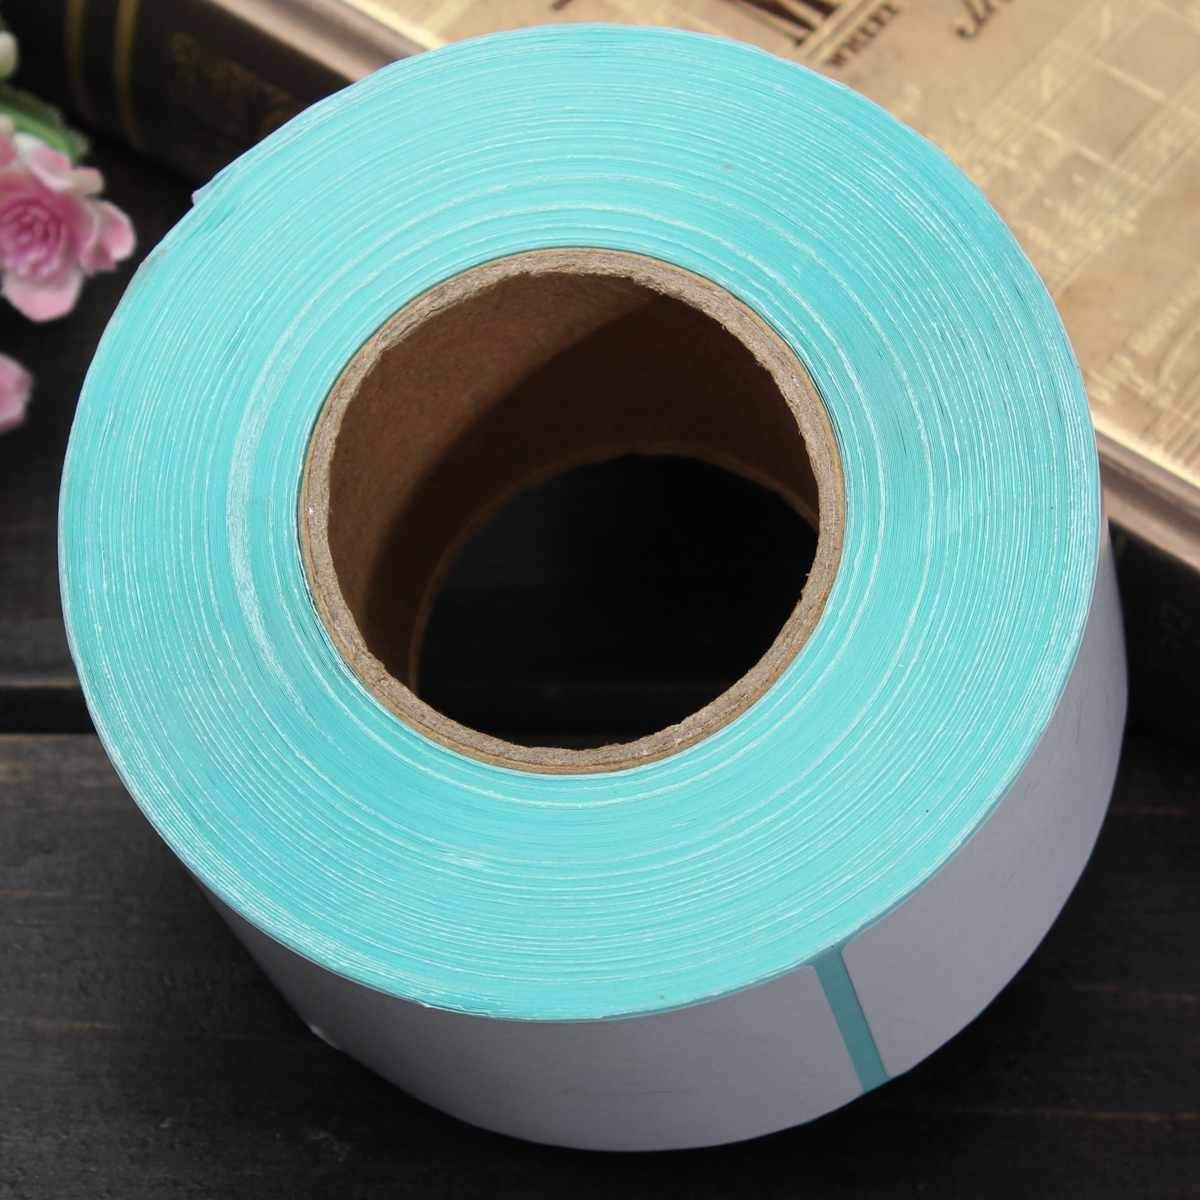 400PCS Printing Label 40x70mm Barcode Number Thermal Adhesive Paper Sticker for Printer Supplies by Beizuu (Image #4)